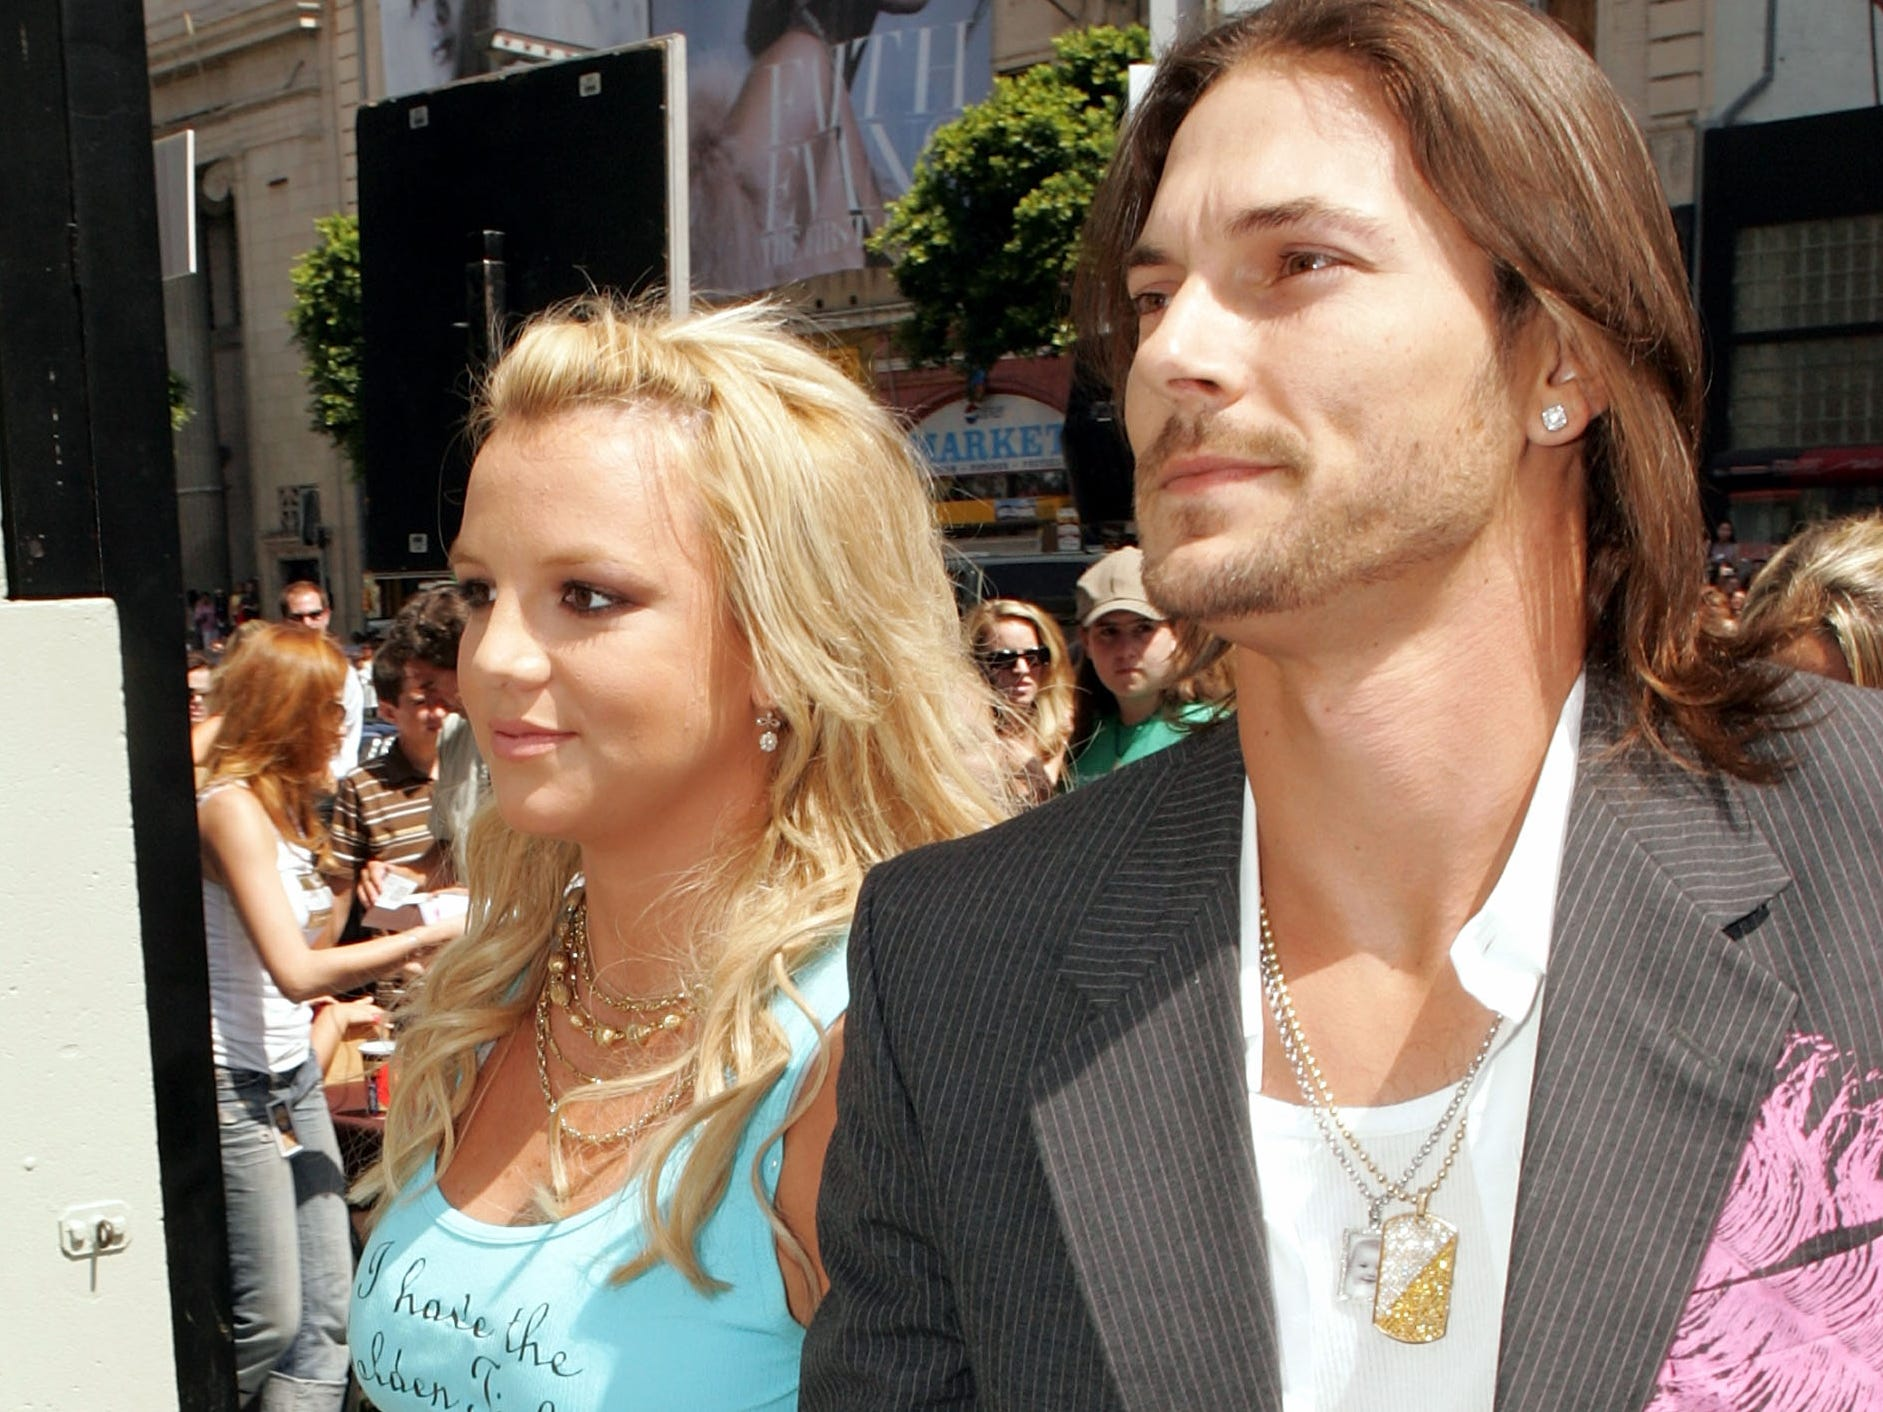 HOLLYWOOD - JULY 10:  Singer Britney Spears (L) and husband Kevin Federline arrive at the Warner Bros. Premiere of Charlie and the Chocolate Factory at the Grauman's Chinese Theatre on July 10, 2005 in Hollywood, California.  (Photo by Kevin Winter/Getty Images) (Via MerlinFTP Drop)